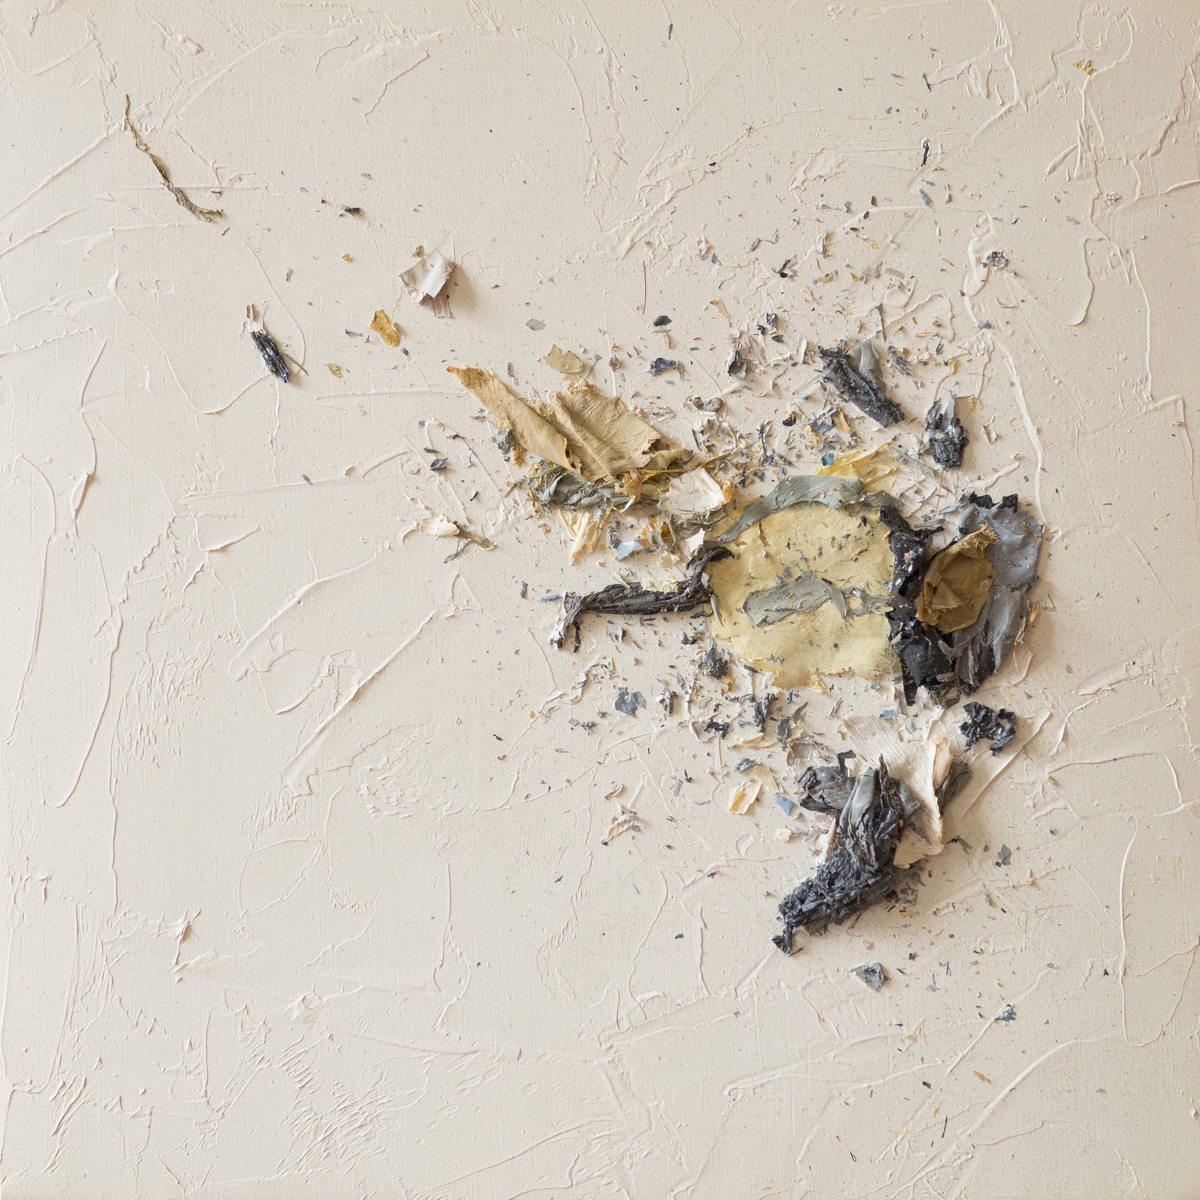 The Complexities of Emotions No.1   oils & oil paint scrapings on wood panel, 6 x 6